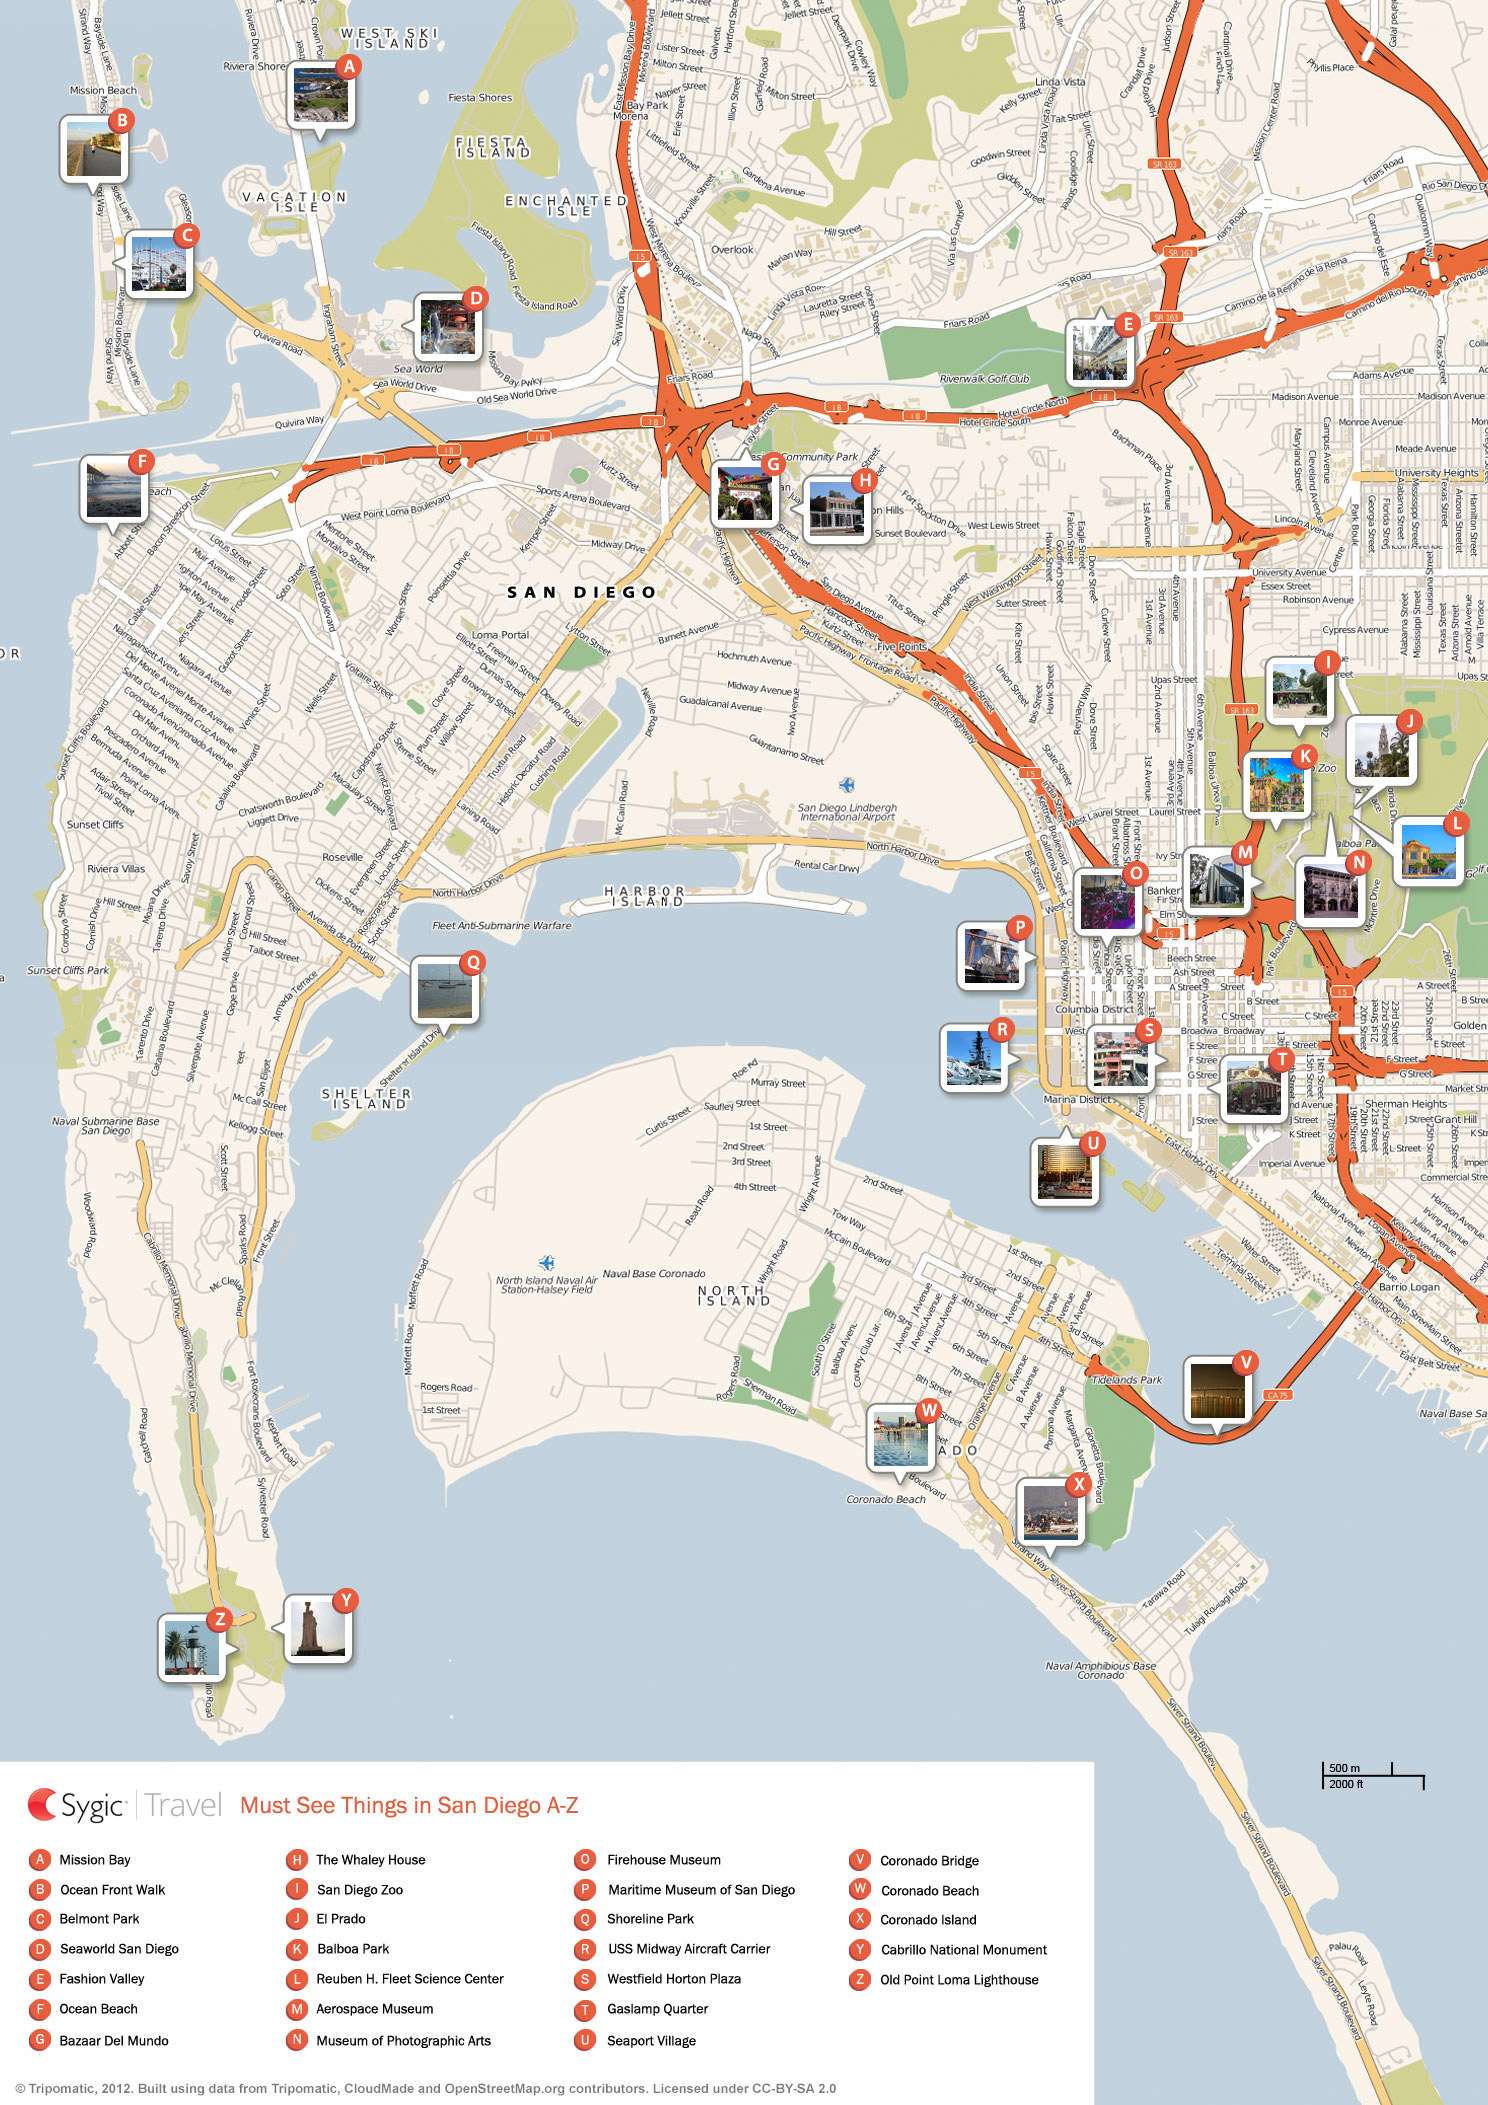 San Diego Printable Tourist Map – Map Of Rome For Tourists